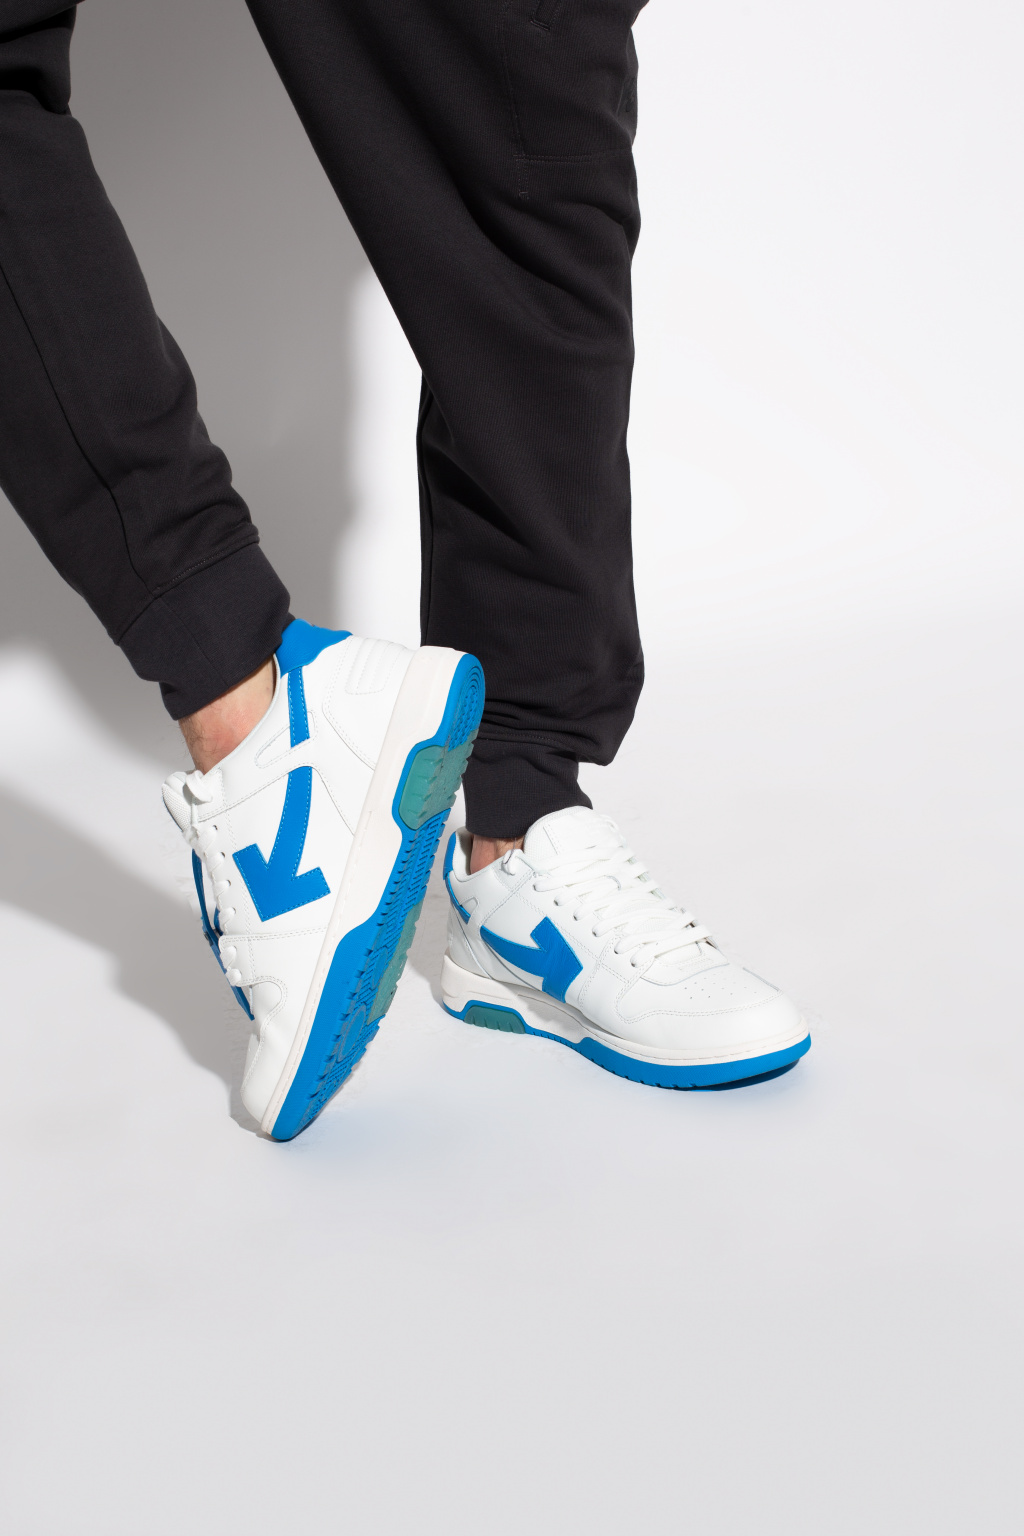 Off-White 'Out Of Office' sneakers